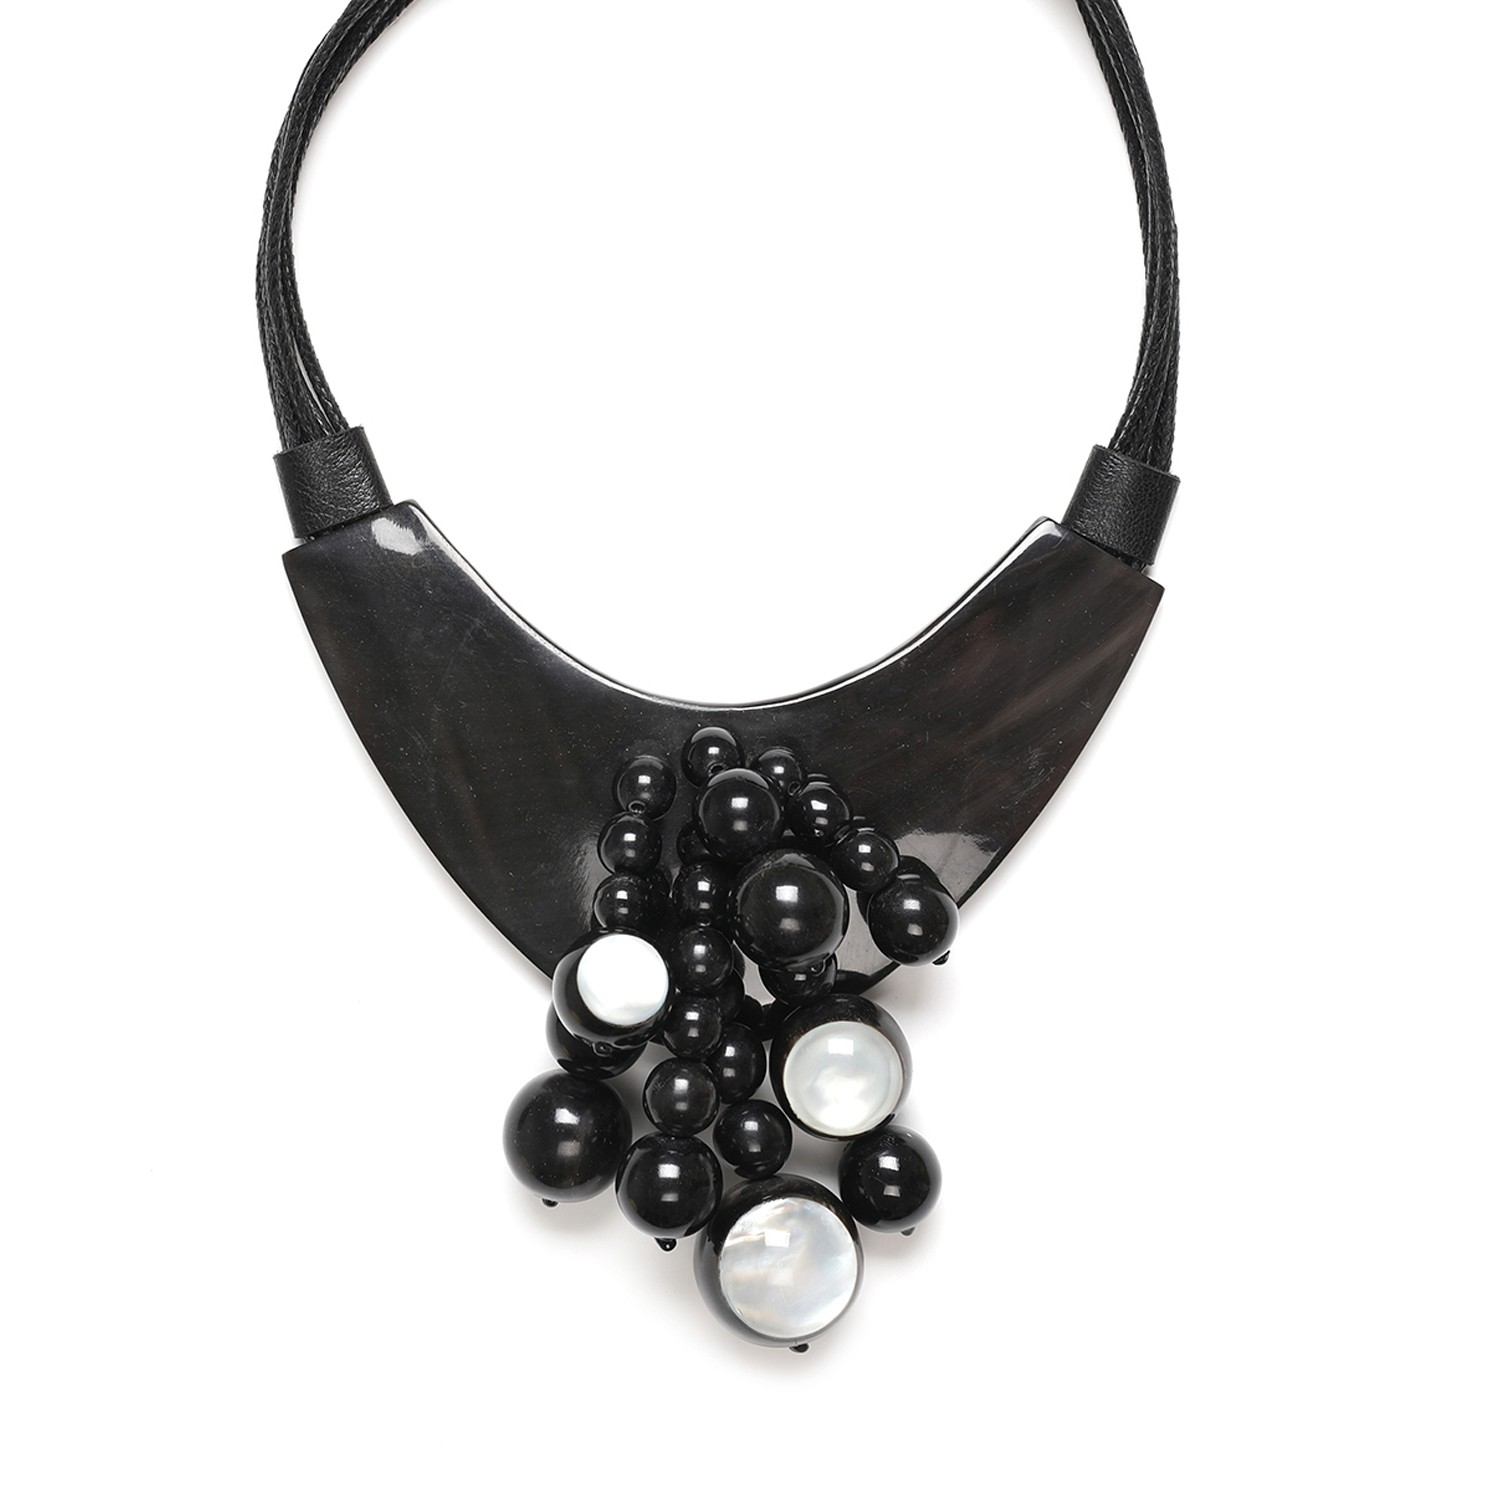 MIDNIGHT THE necklace